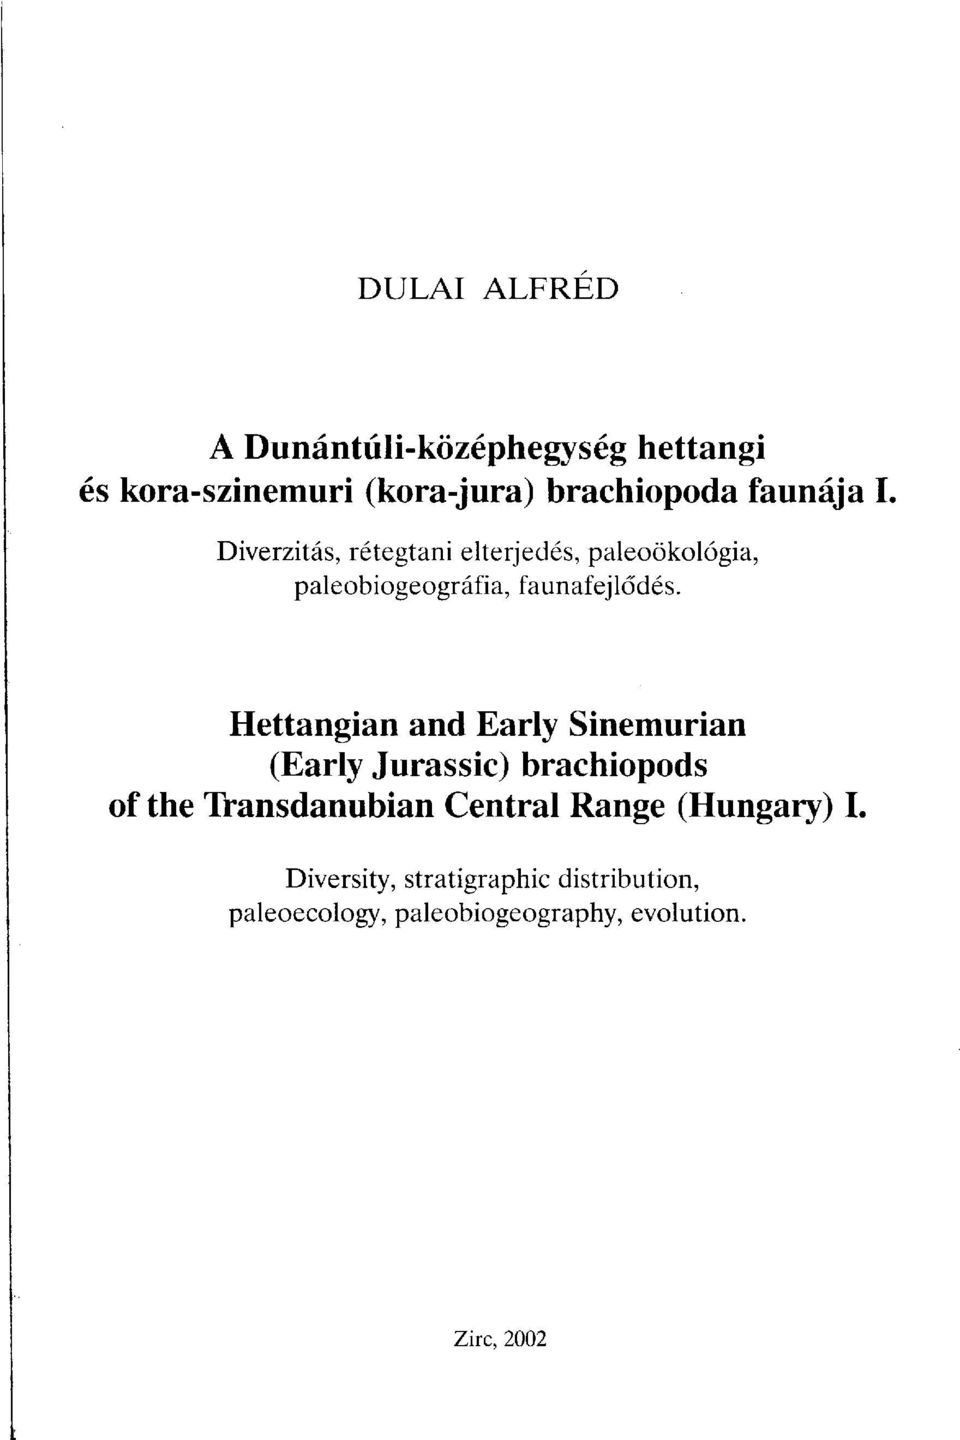 Hettangian and Early Sinemurian (Early Jurassic) brachiopods of the Transdanubian Central Range